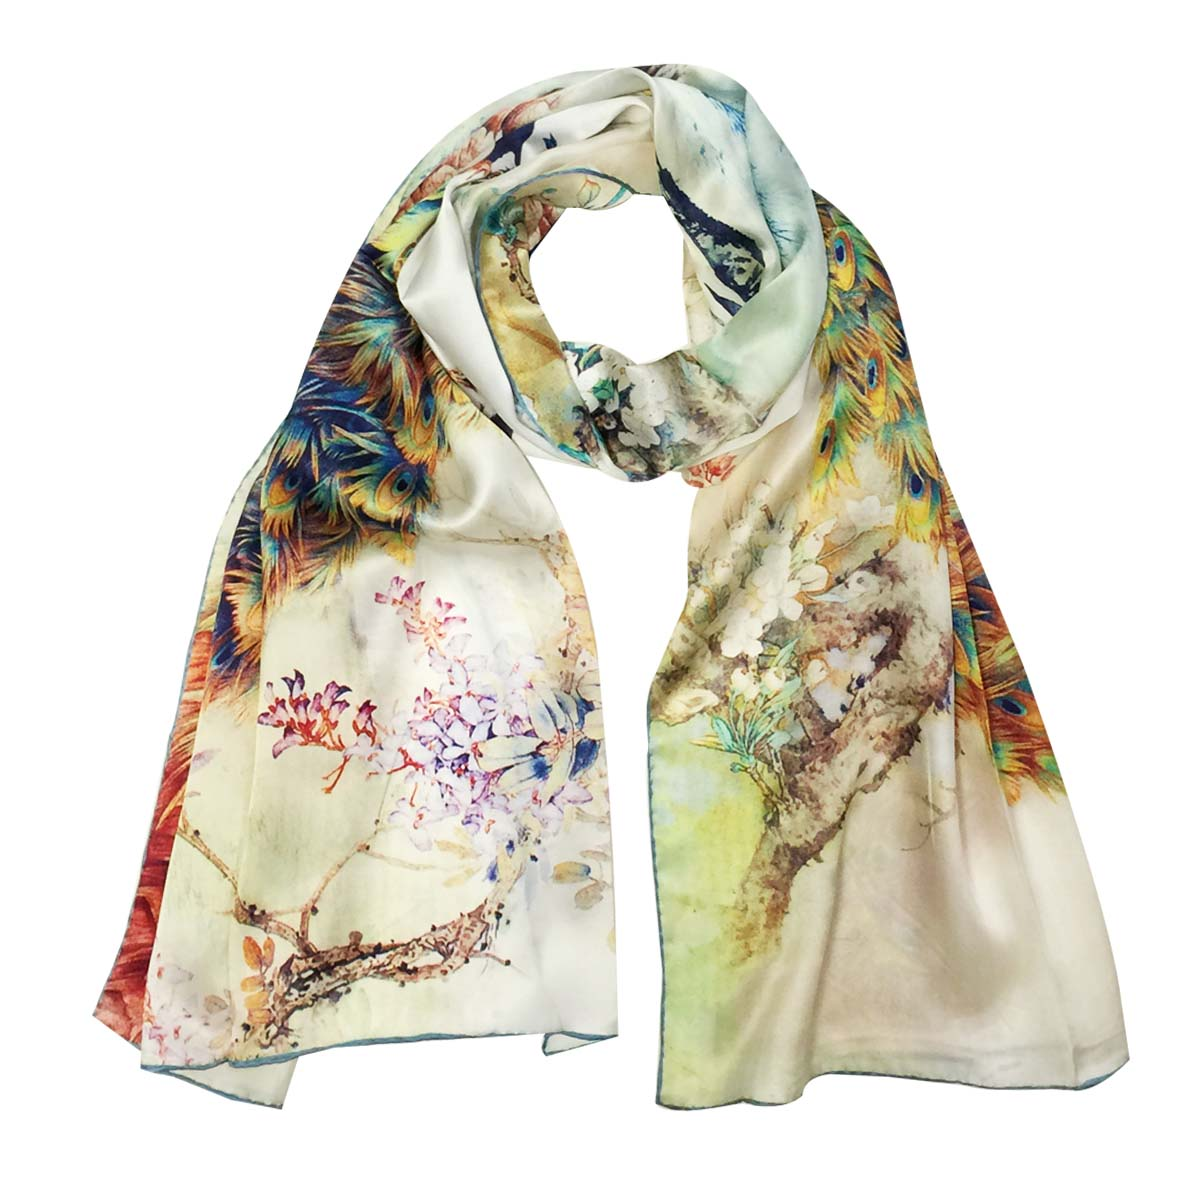 Ivory Long Wide Oversized Scarf Wrap Swallow Crane Floral Lightweight Shawl New